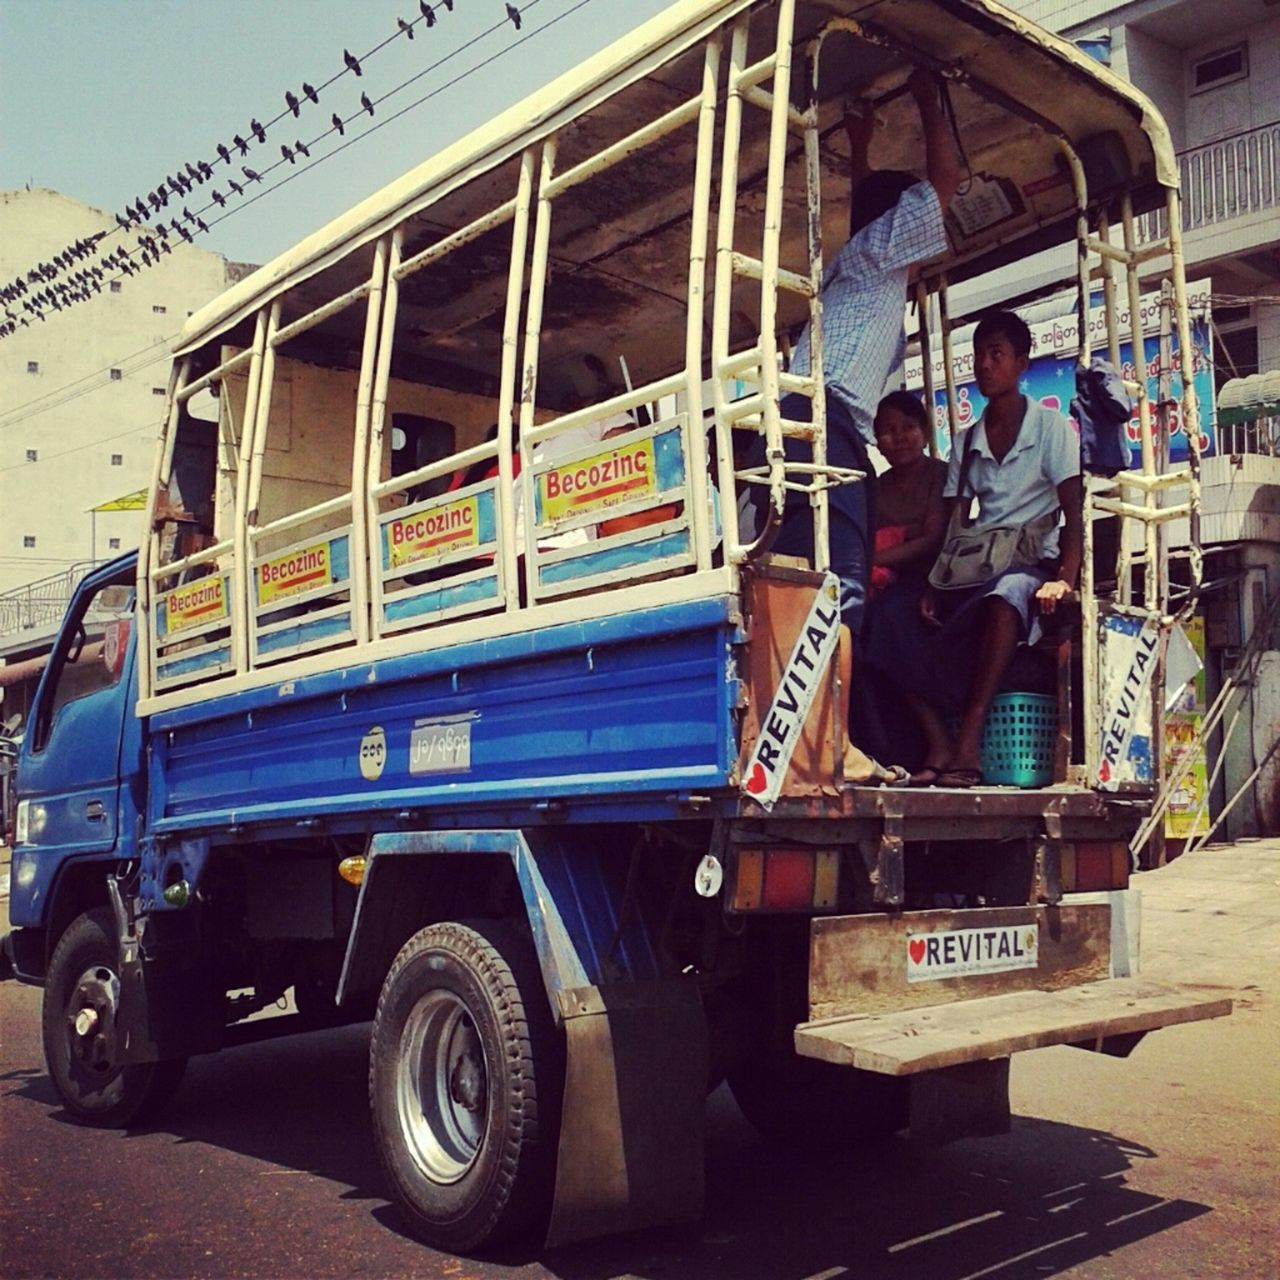 Trucks are used as Public transport, Yangon, Myanmar Street Photography Street Life